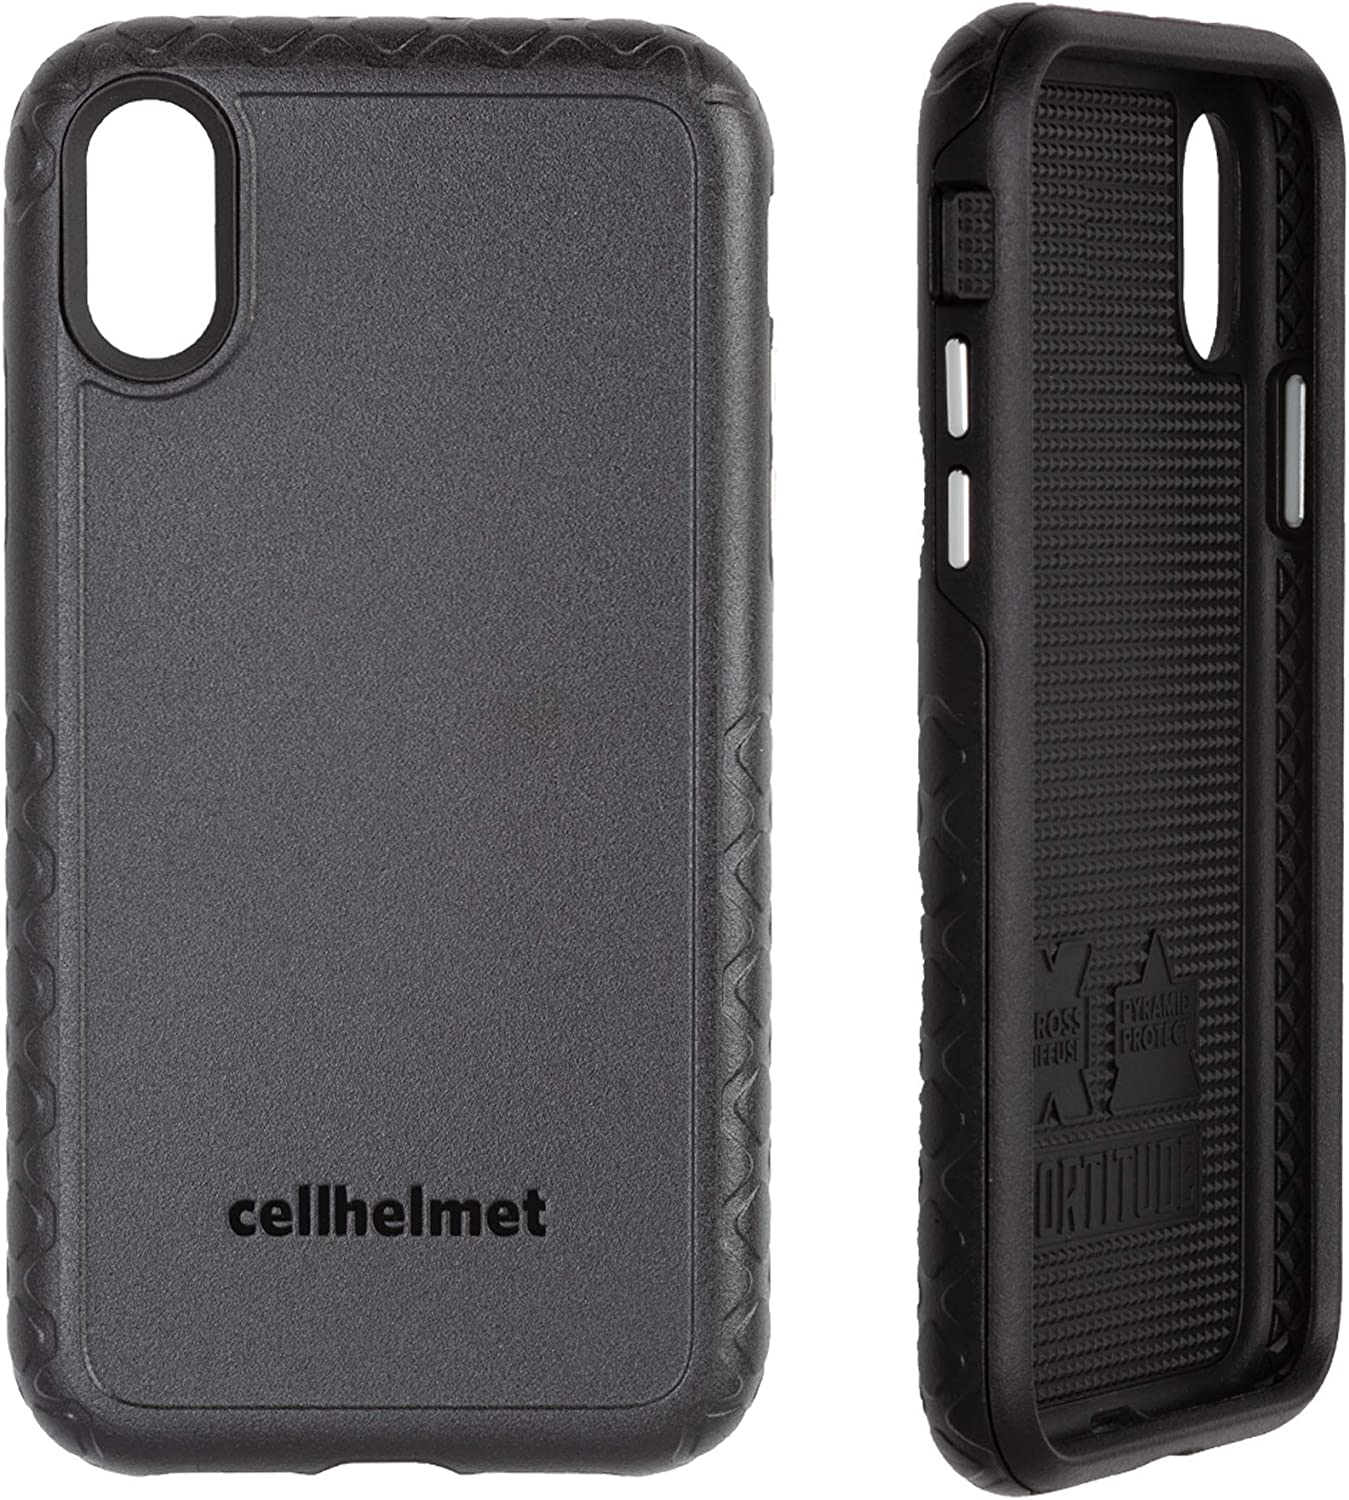 cellhelmet Fortitude Series Onyx Black Dual Layer Phone Case for Apple iPhone Xs/X | As Seen on Shark Tank | in Retail Package